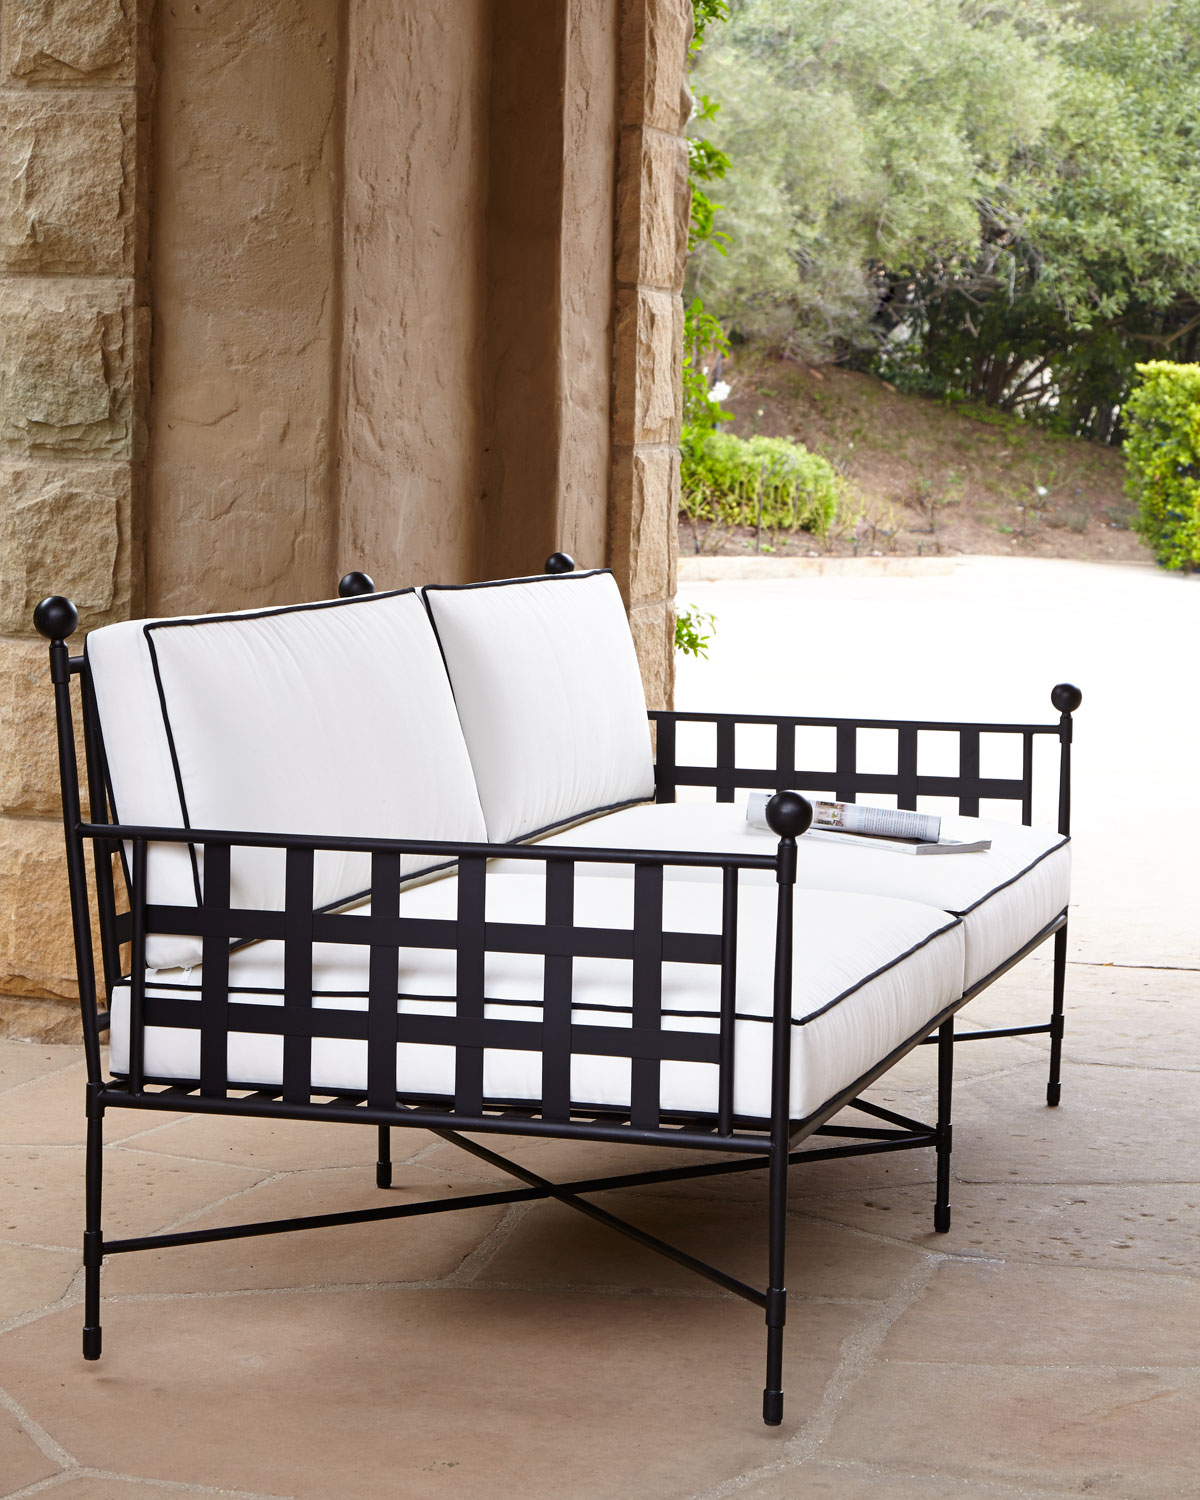 Avery Neoclassical Outdoor Sofa, White/Black